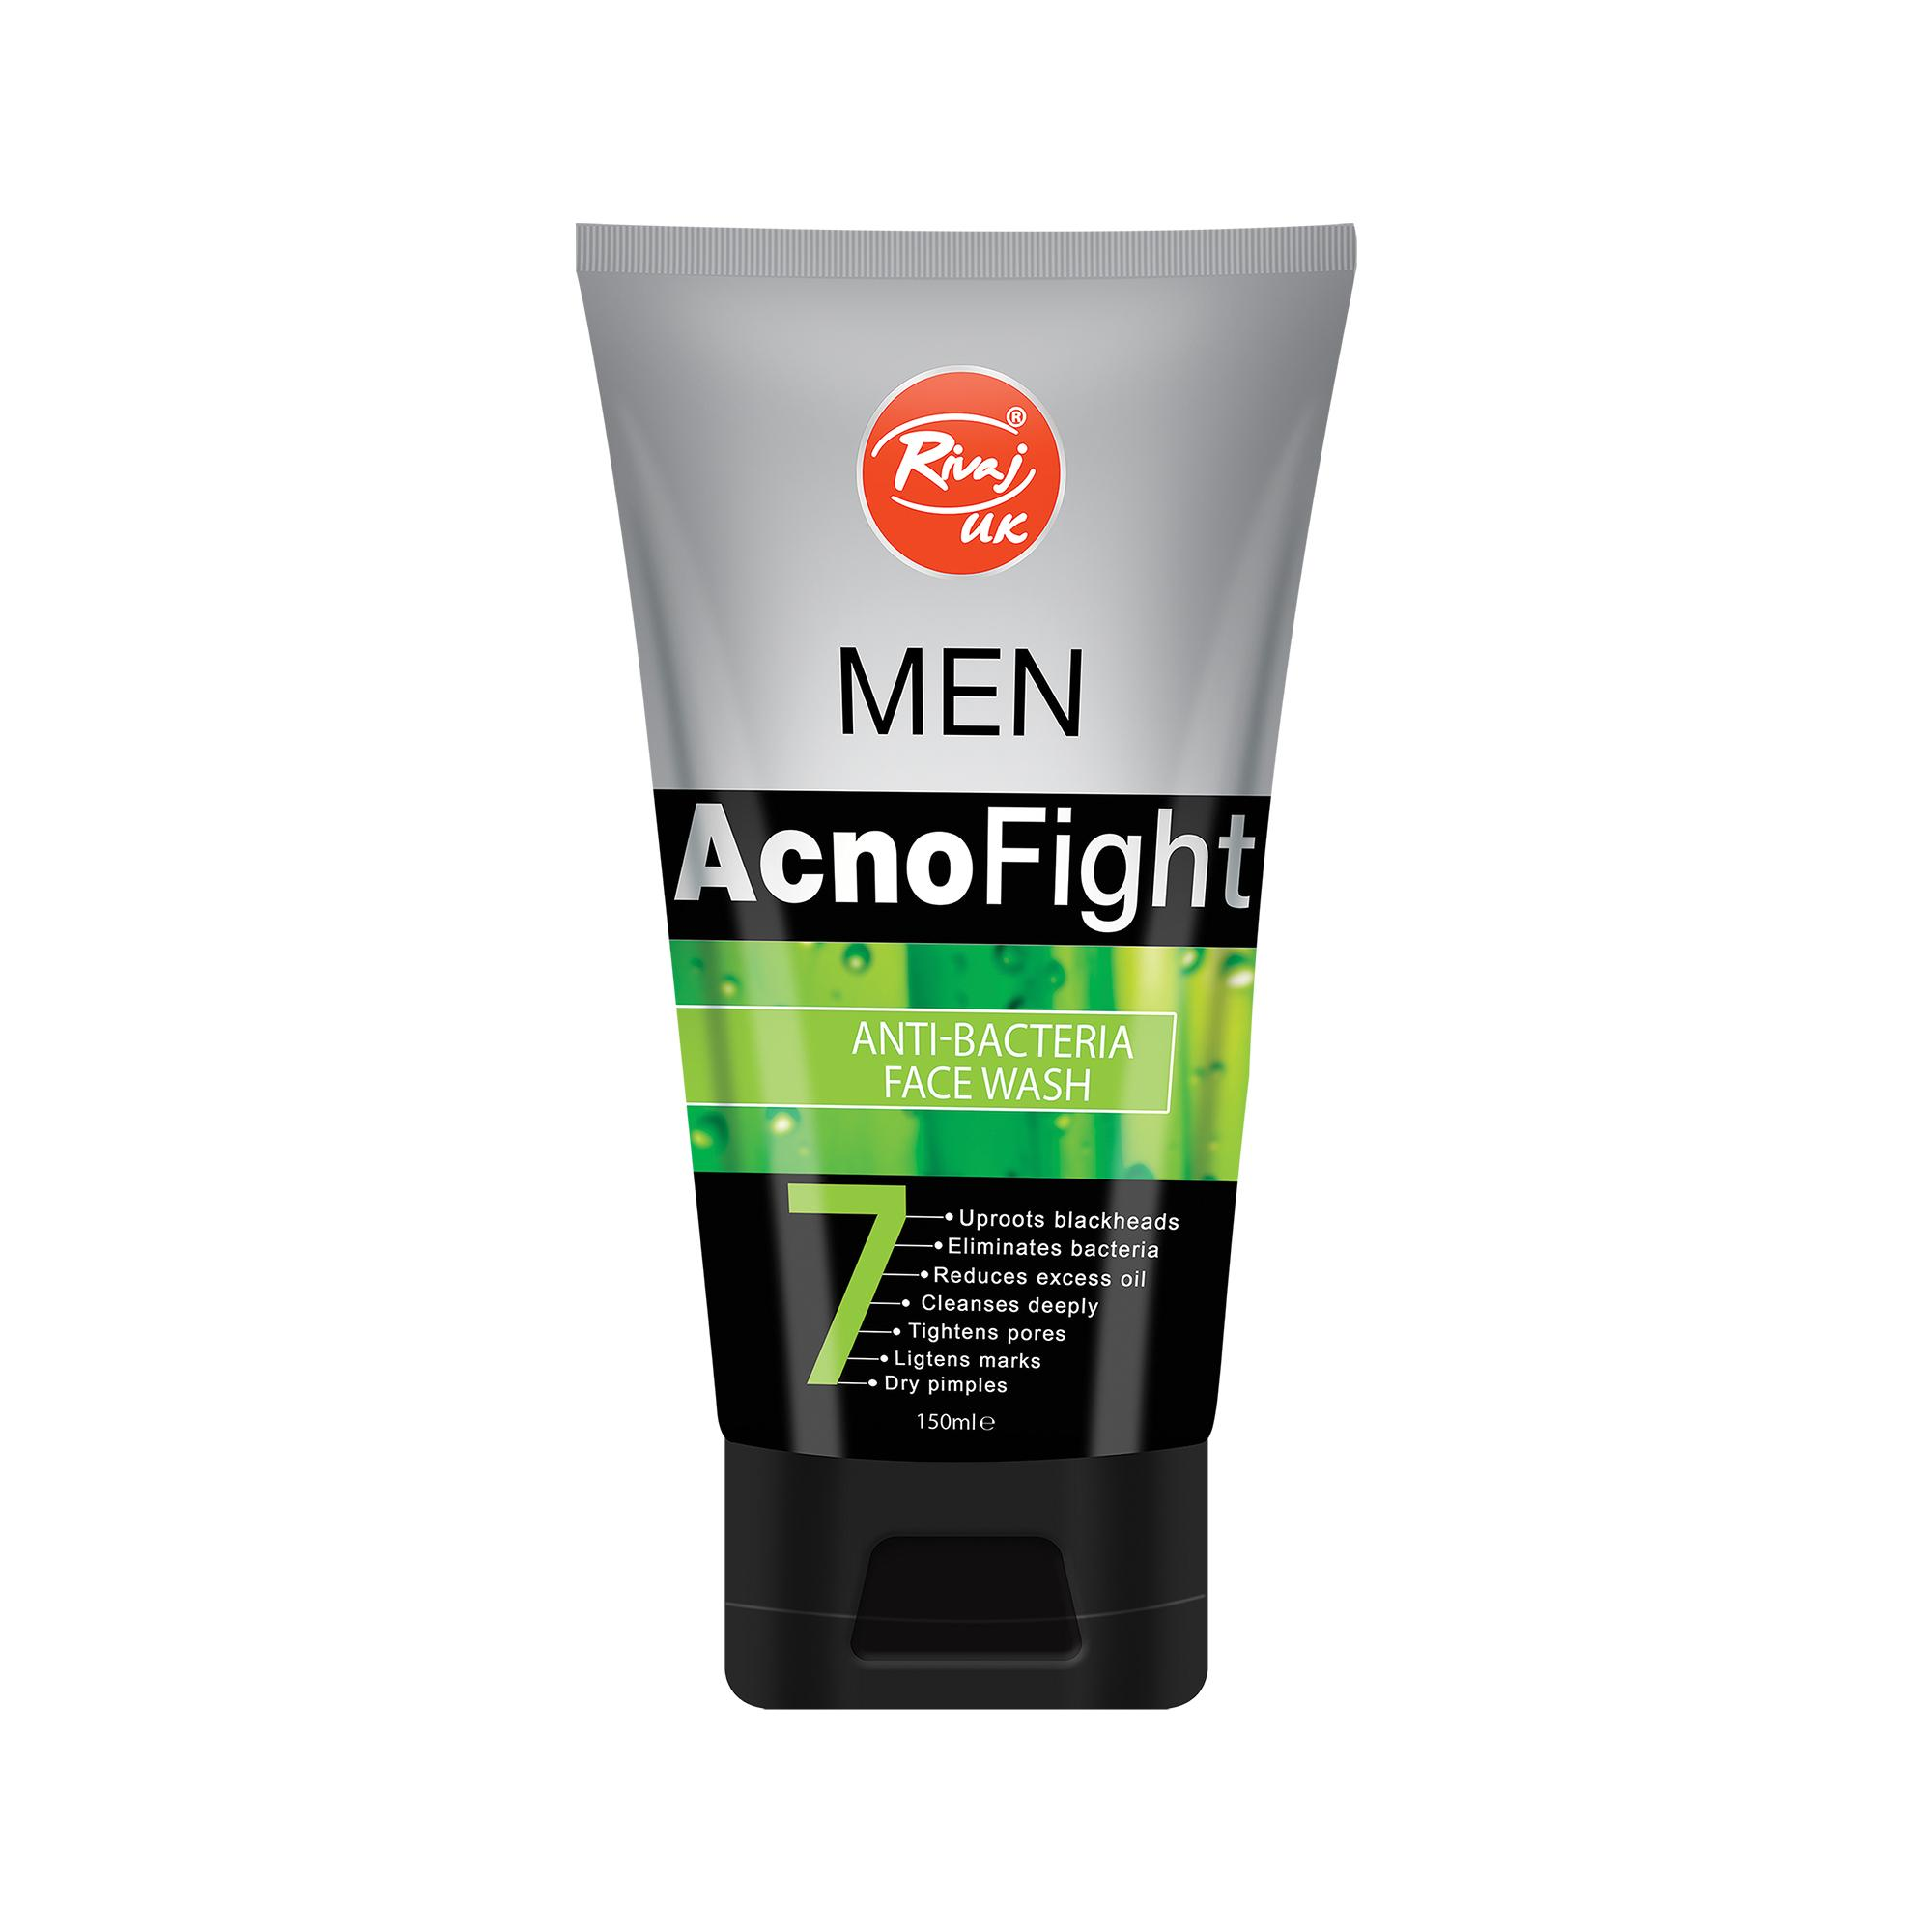 Skin Care Products Online In Pakistan Garnier Pure Active Acne Whitening Cream 20ml Men Acno Fight Face Wash 150ml